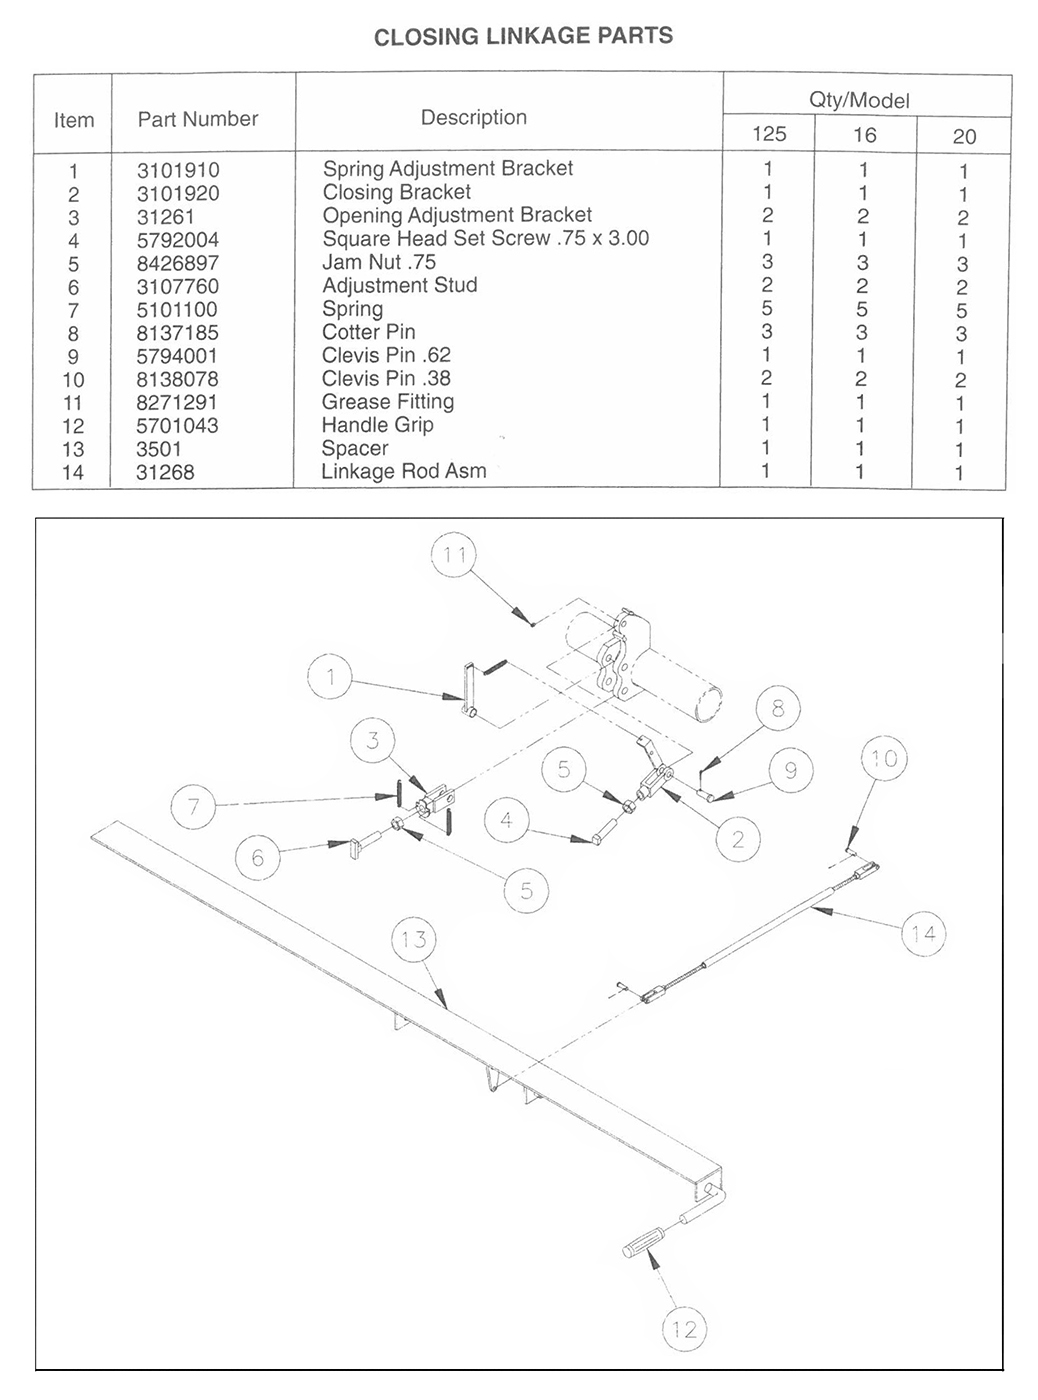 TWL125/16/20 Closing Linkage Parts Diagram